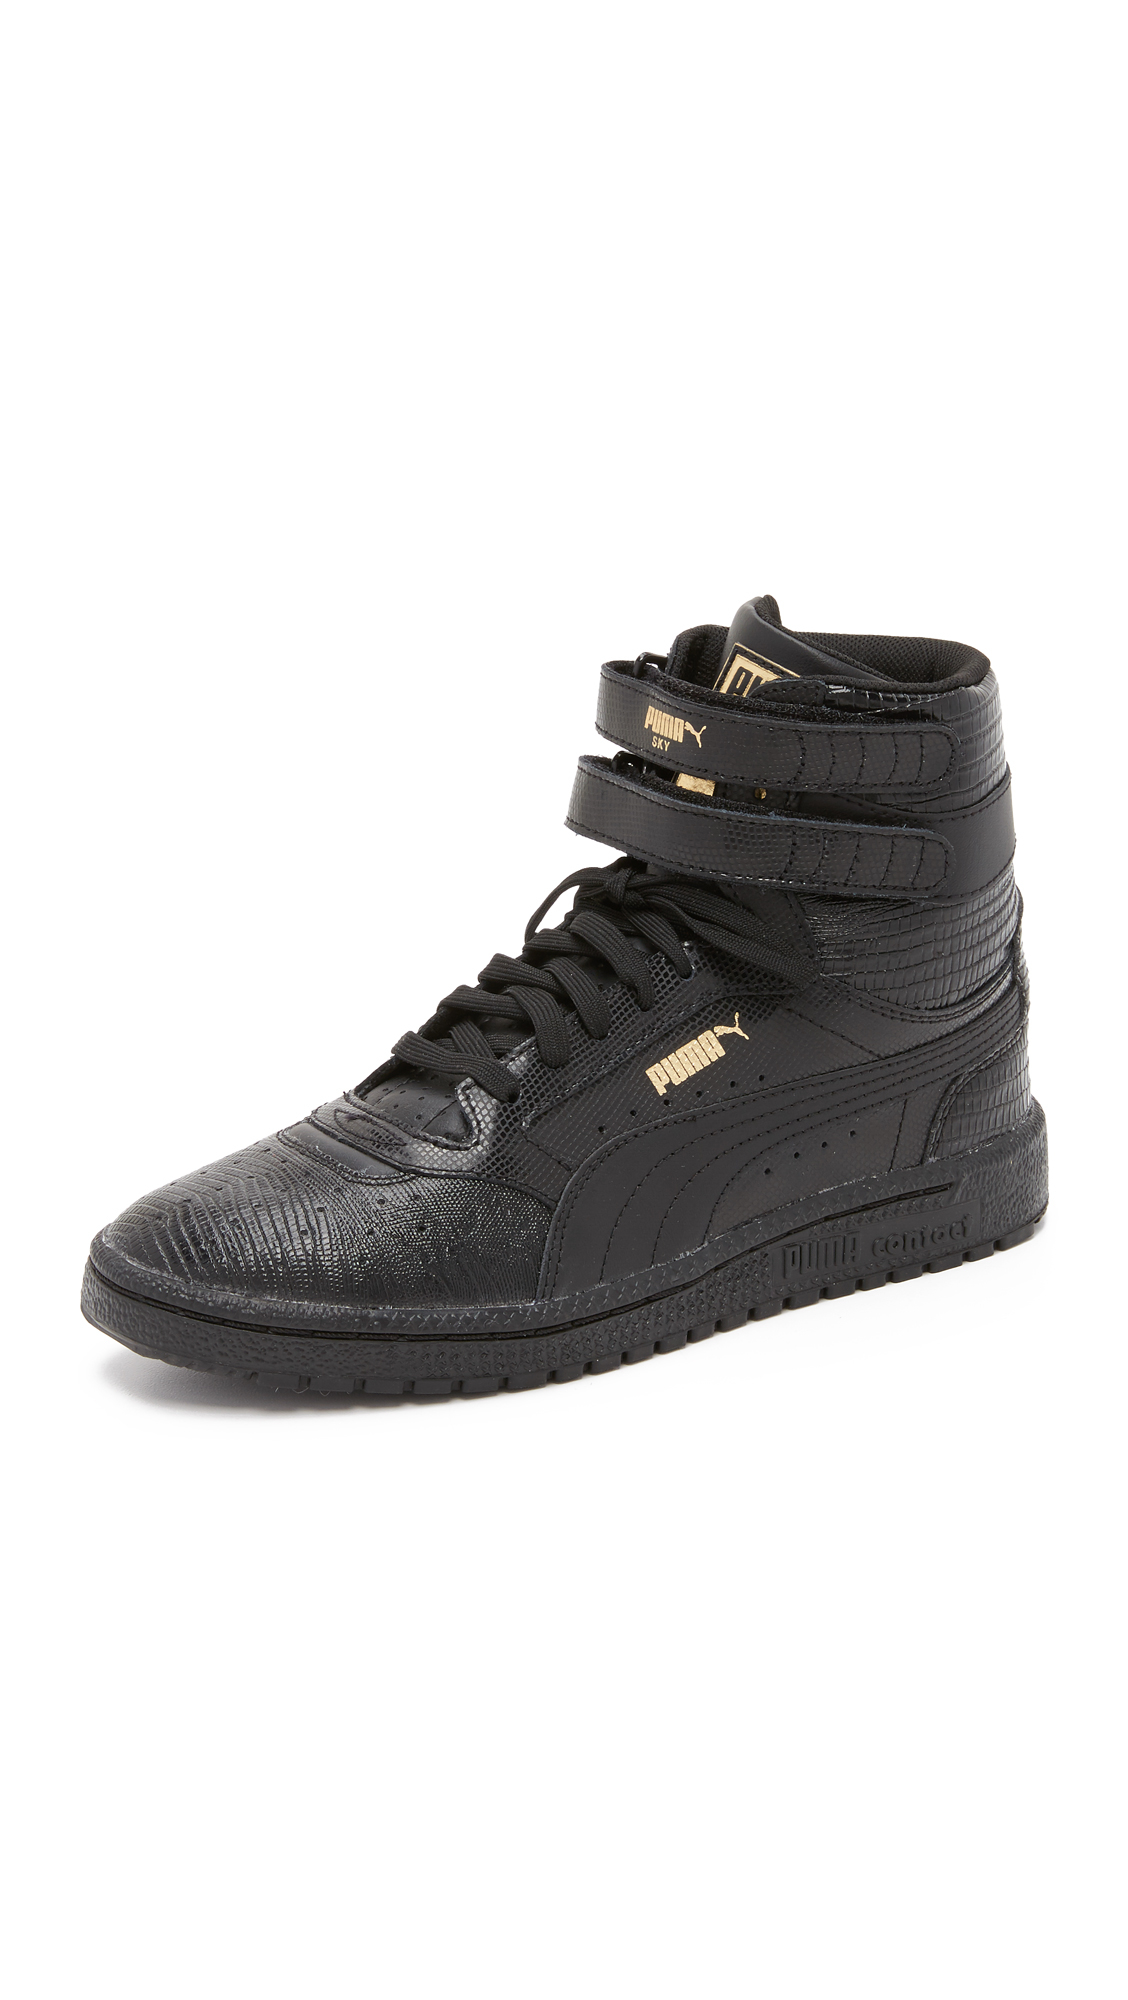 29634649d49 Lyst - PUMA Sky Ii High Top Sneakers in Black